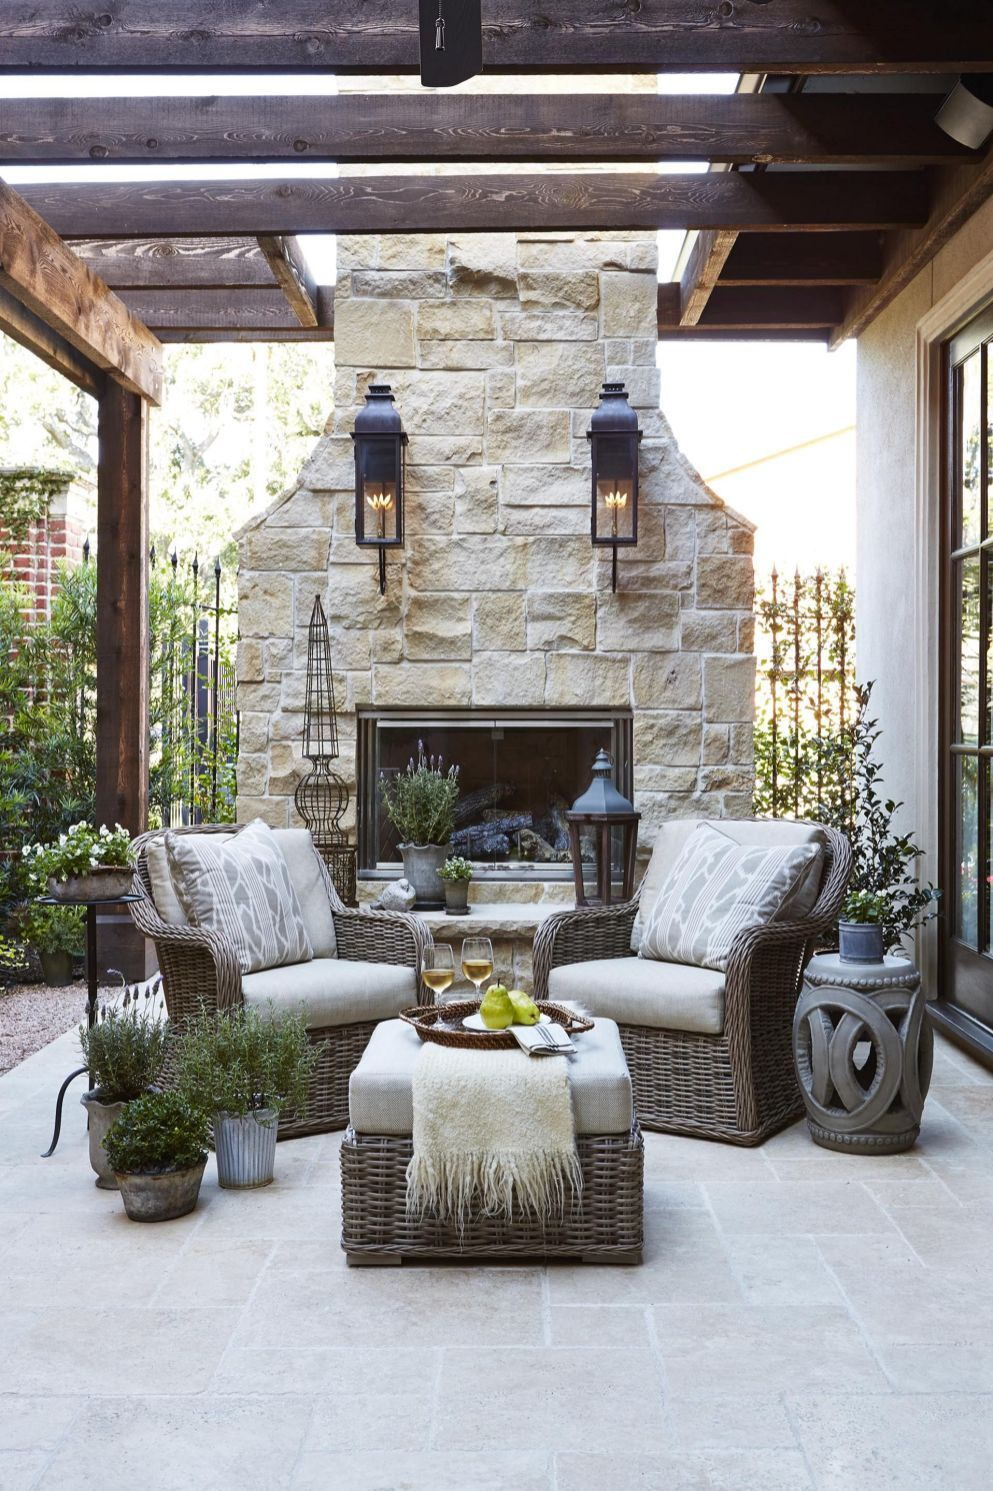 Top 5 Elegant French Country Home Architecture Ideas Freshouz Com Outdoor Fireplace Backyard Outdoor Living